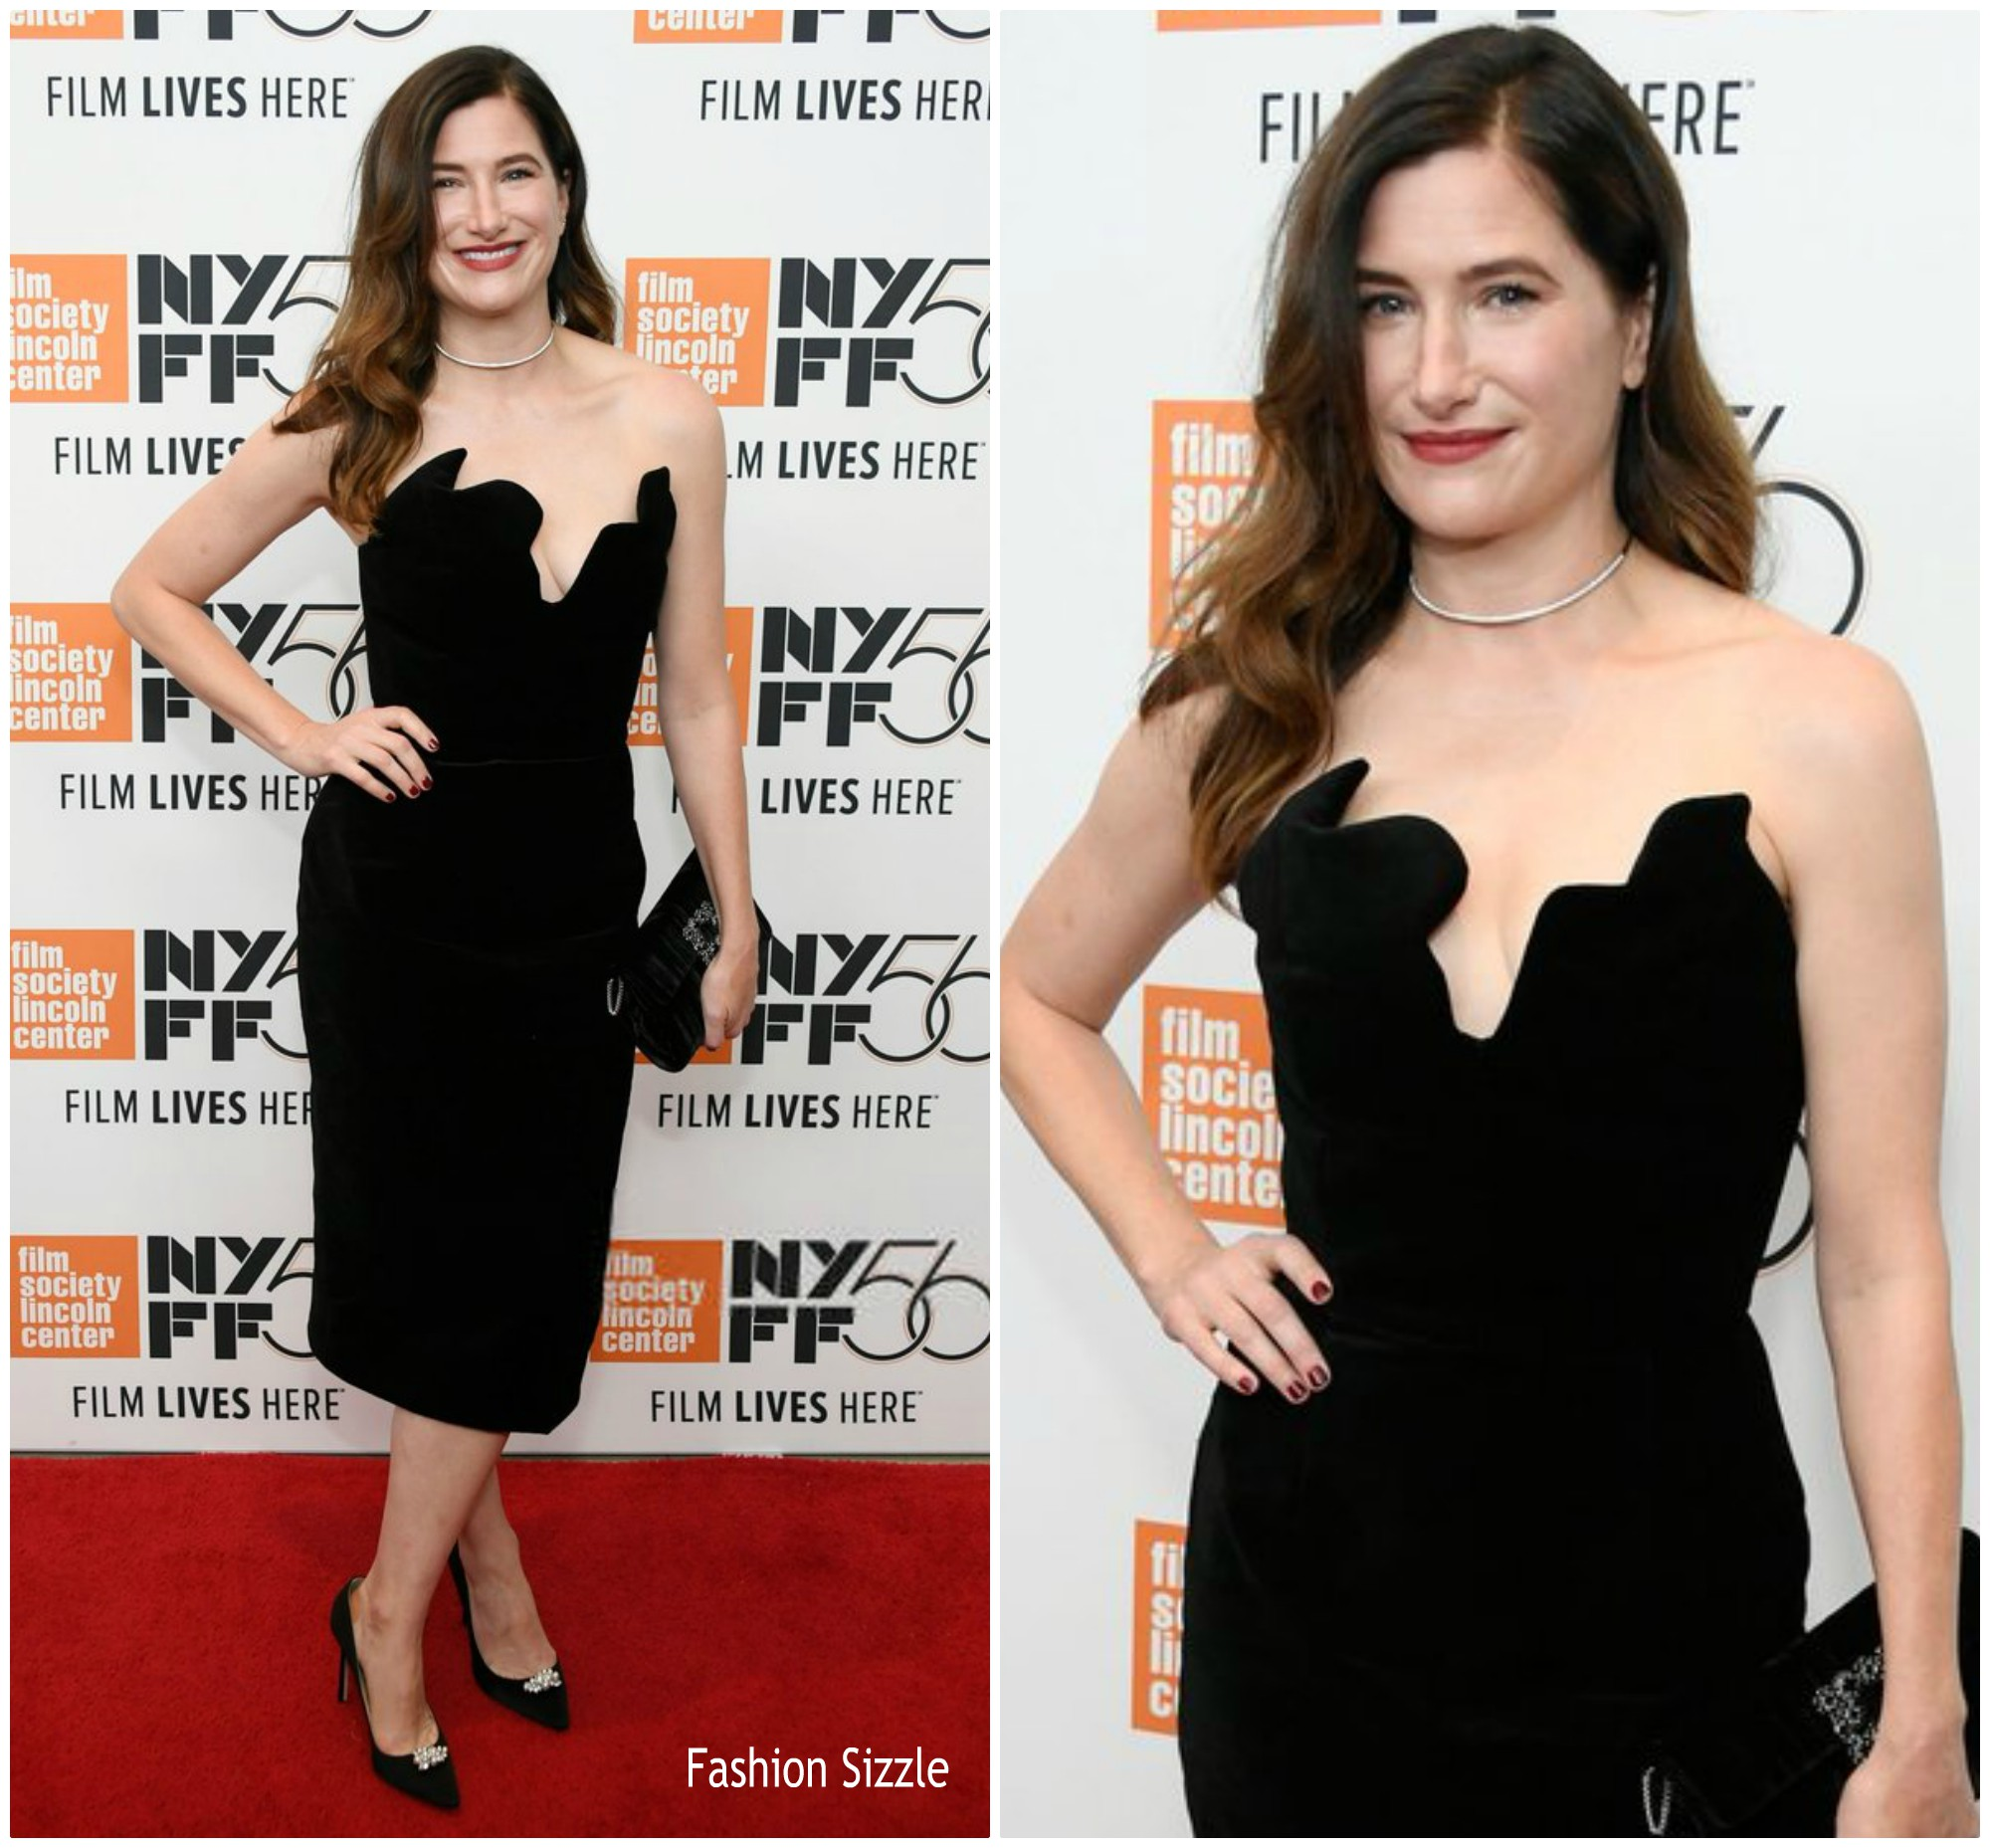 kathryn-hahn-in-rosie-assoulin-private-life-new-york-film-festival-premiere